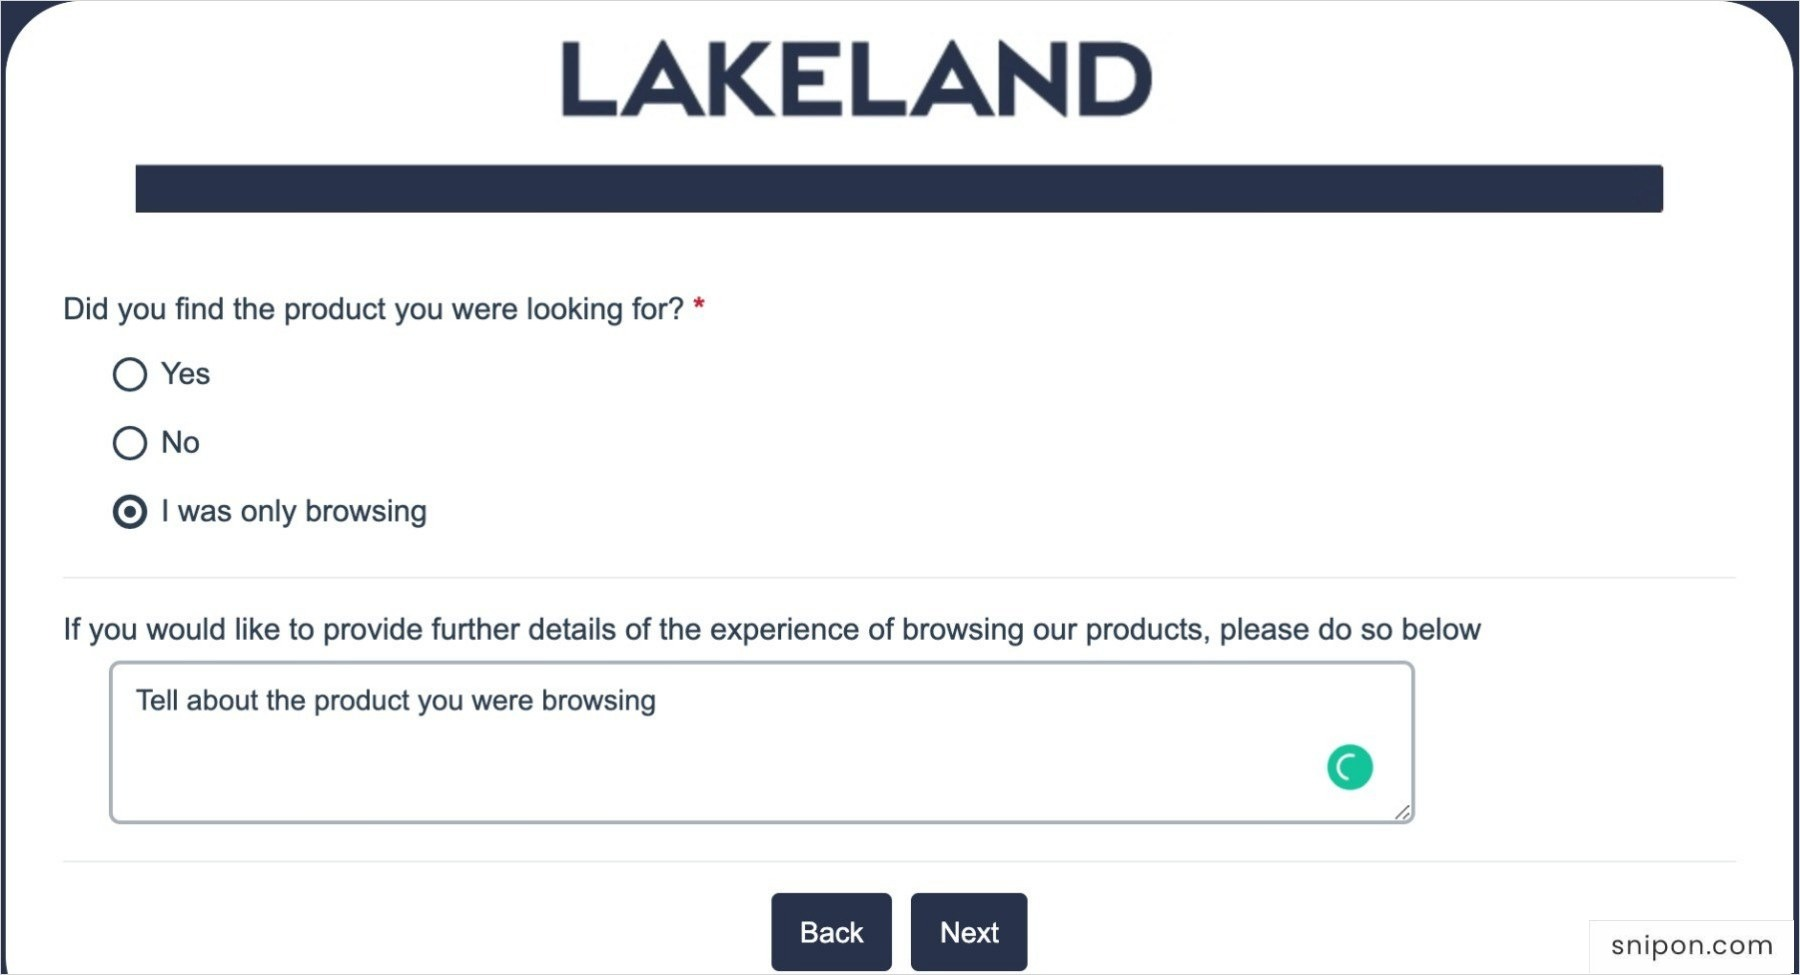 Did You Find The Product You Were Looking For? Lakeland Survey